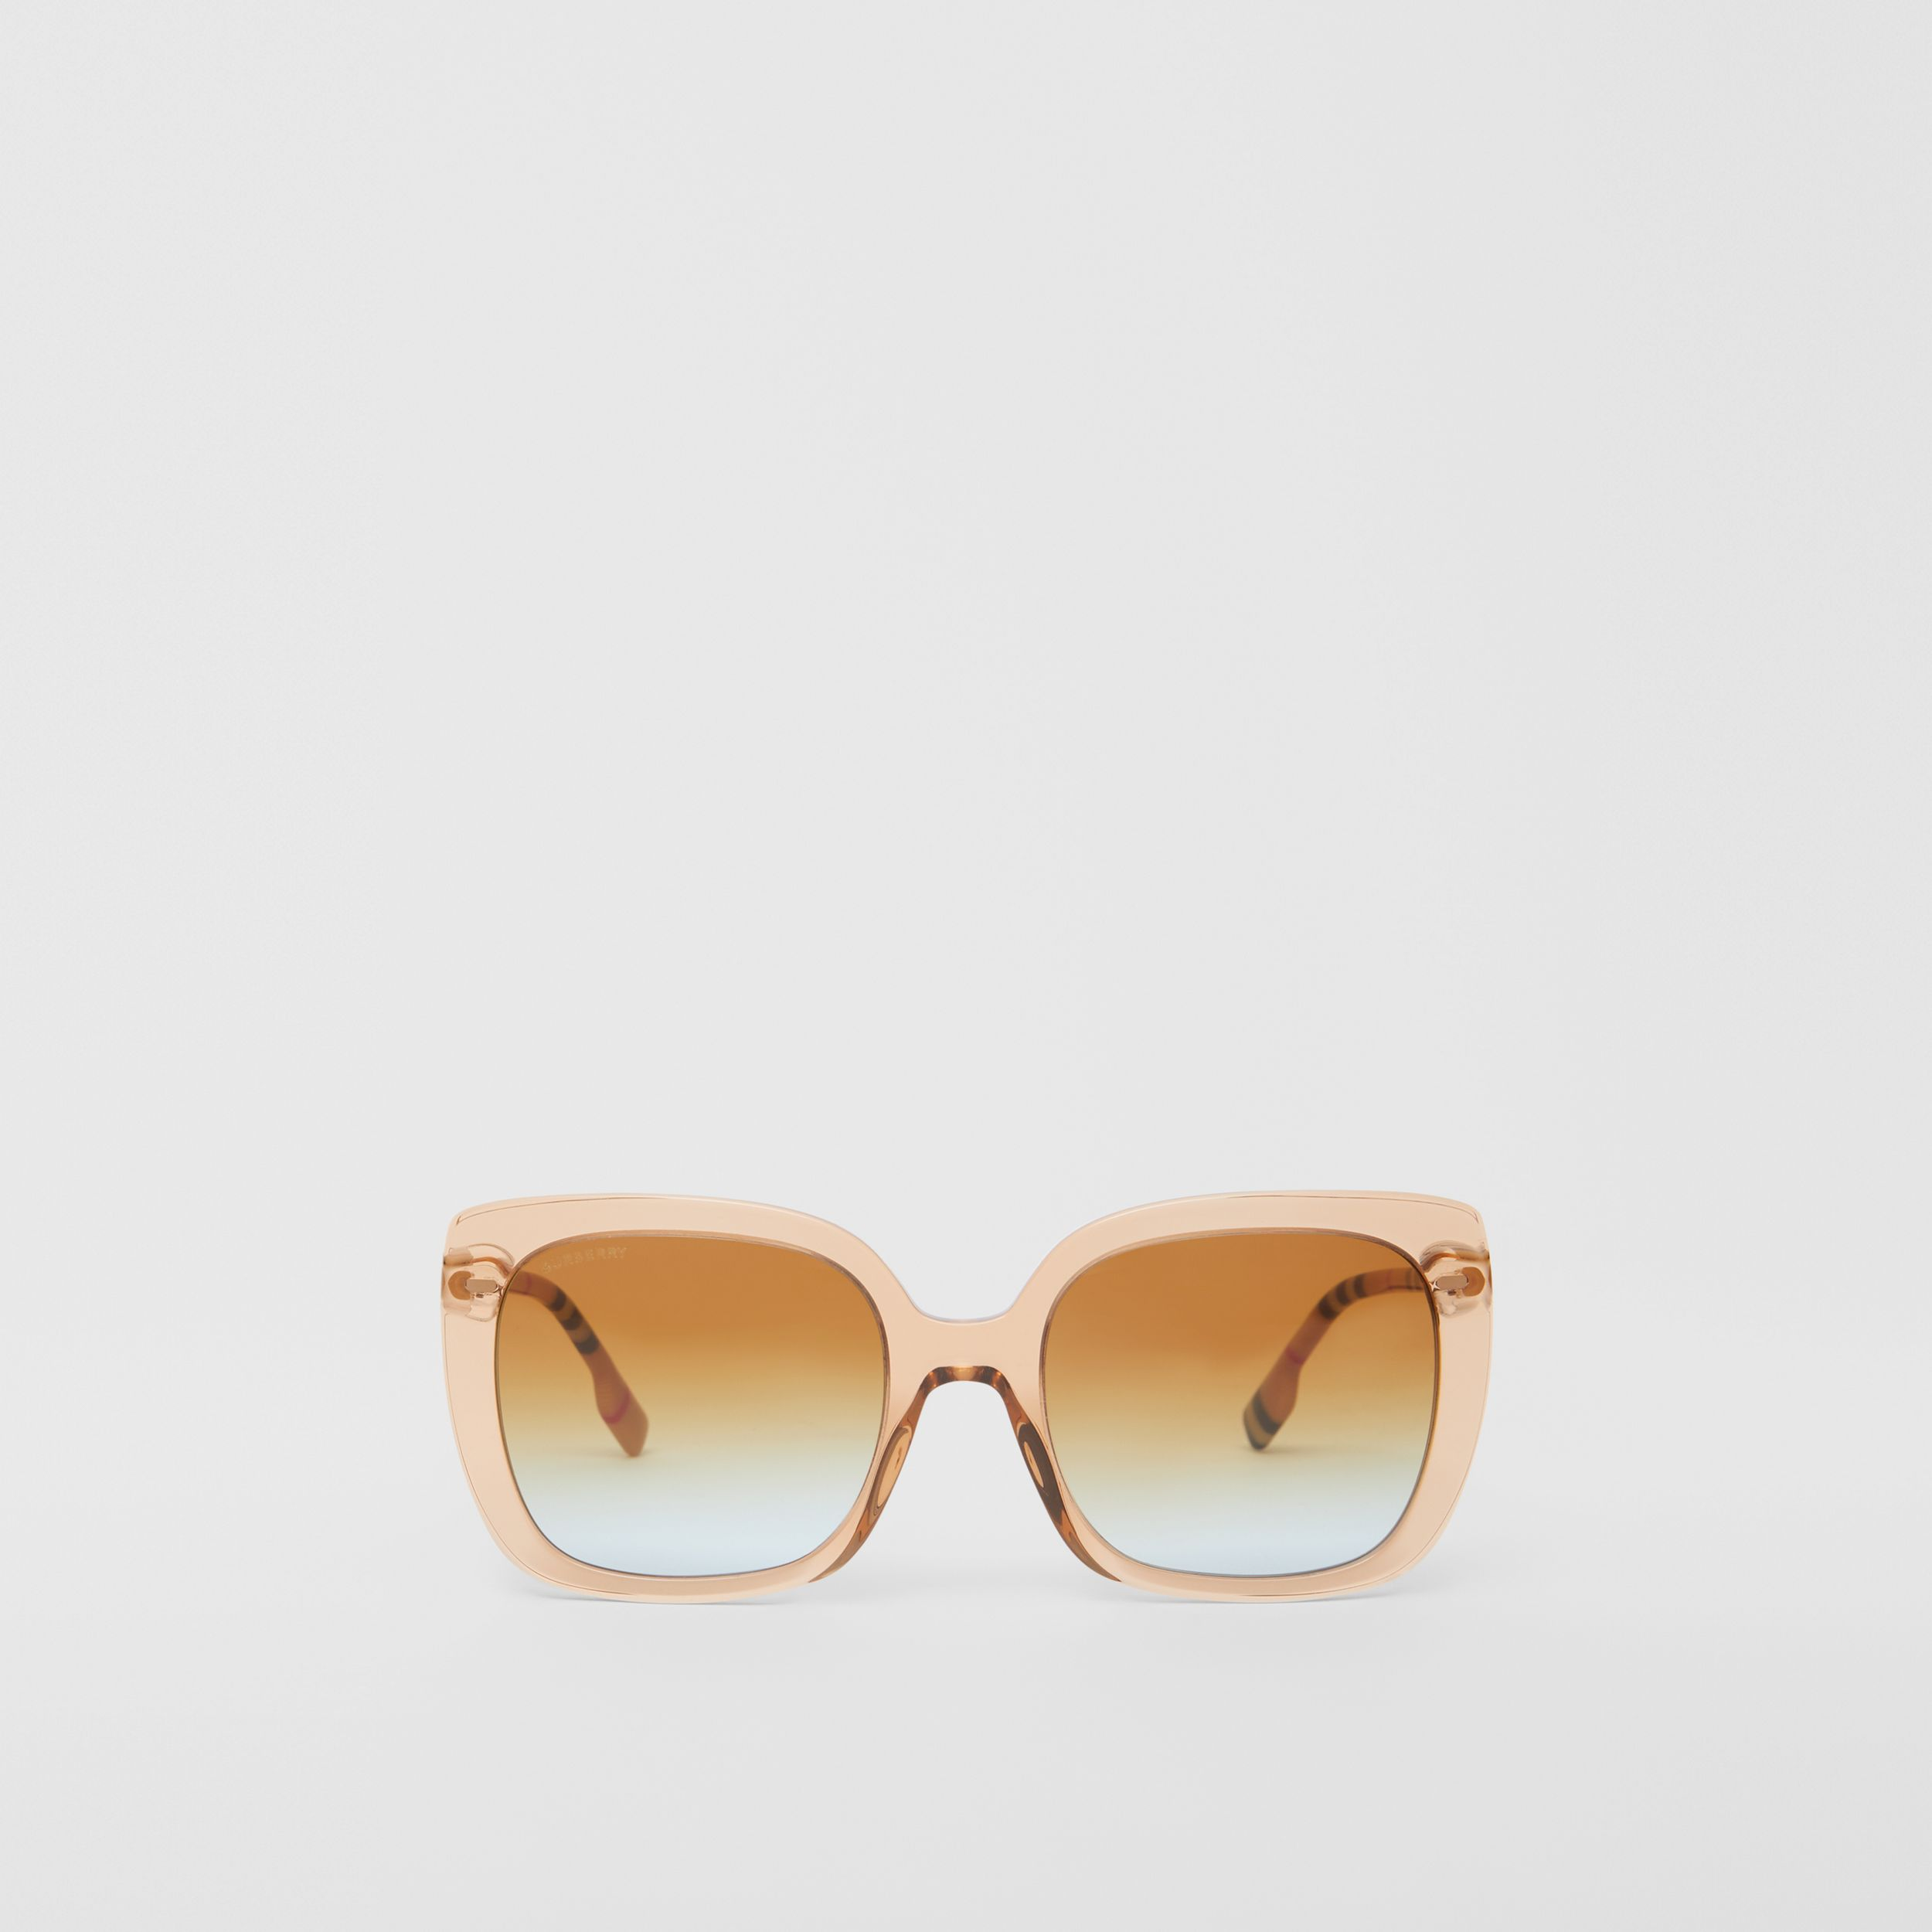 Oversized Square Frame Sunglasses in Peach - Women | Burberry - 1